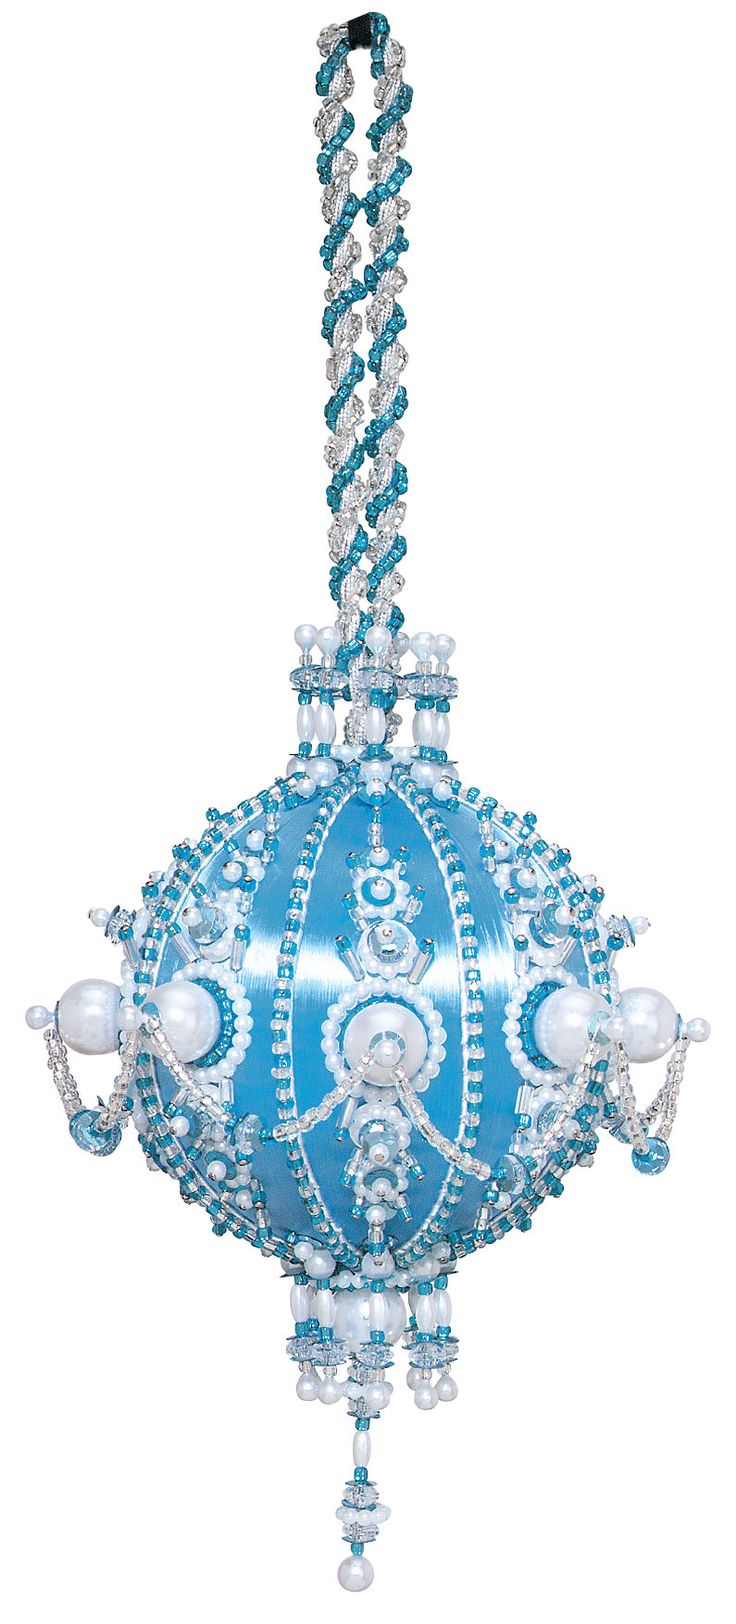 Cracker Box Christmas Ornament Kit, Breathtaking. Love the beads and sequins! Vintage style.